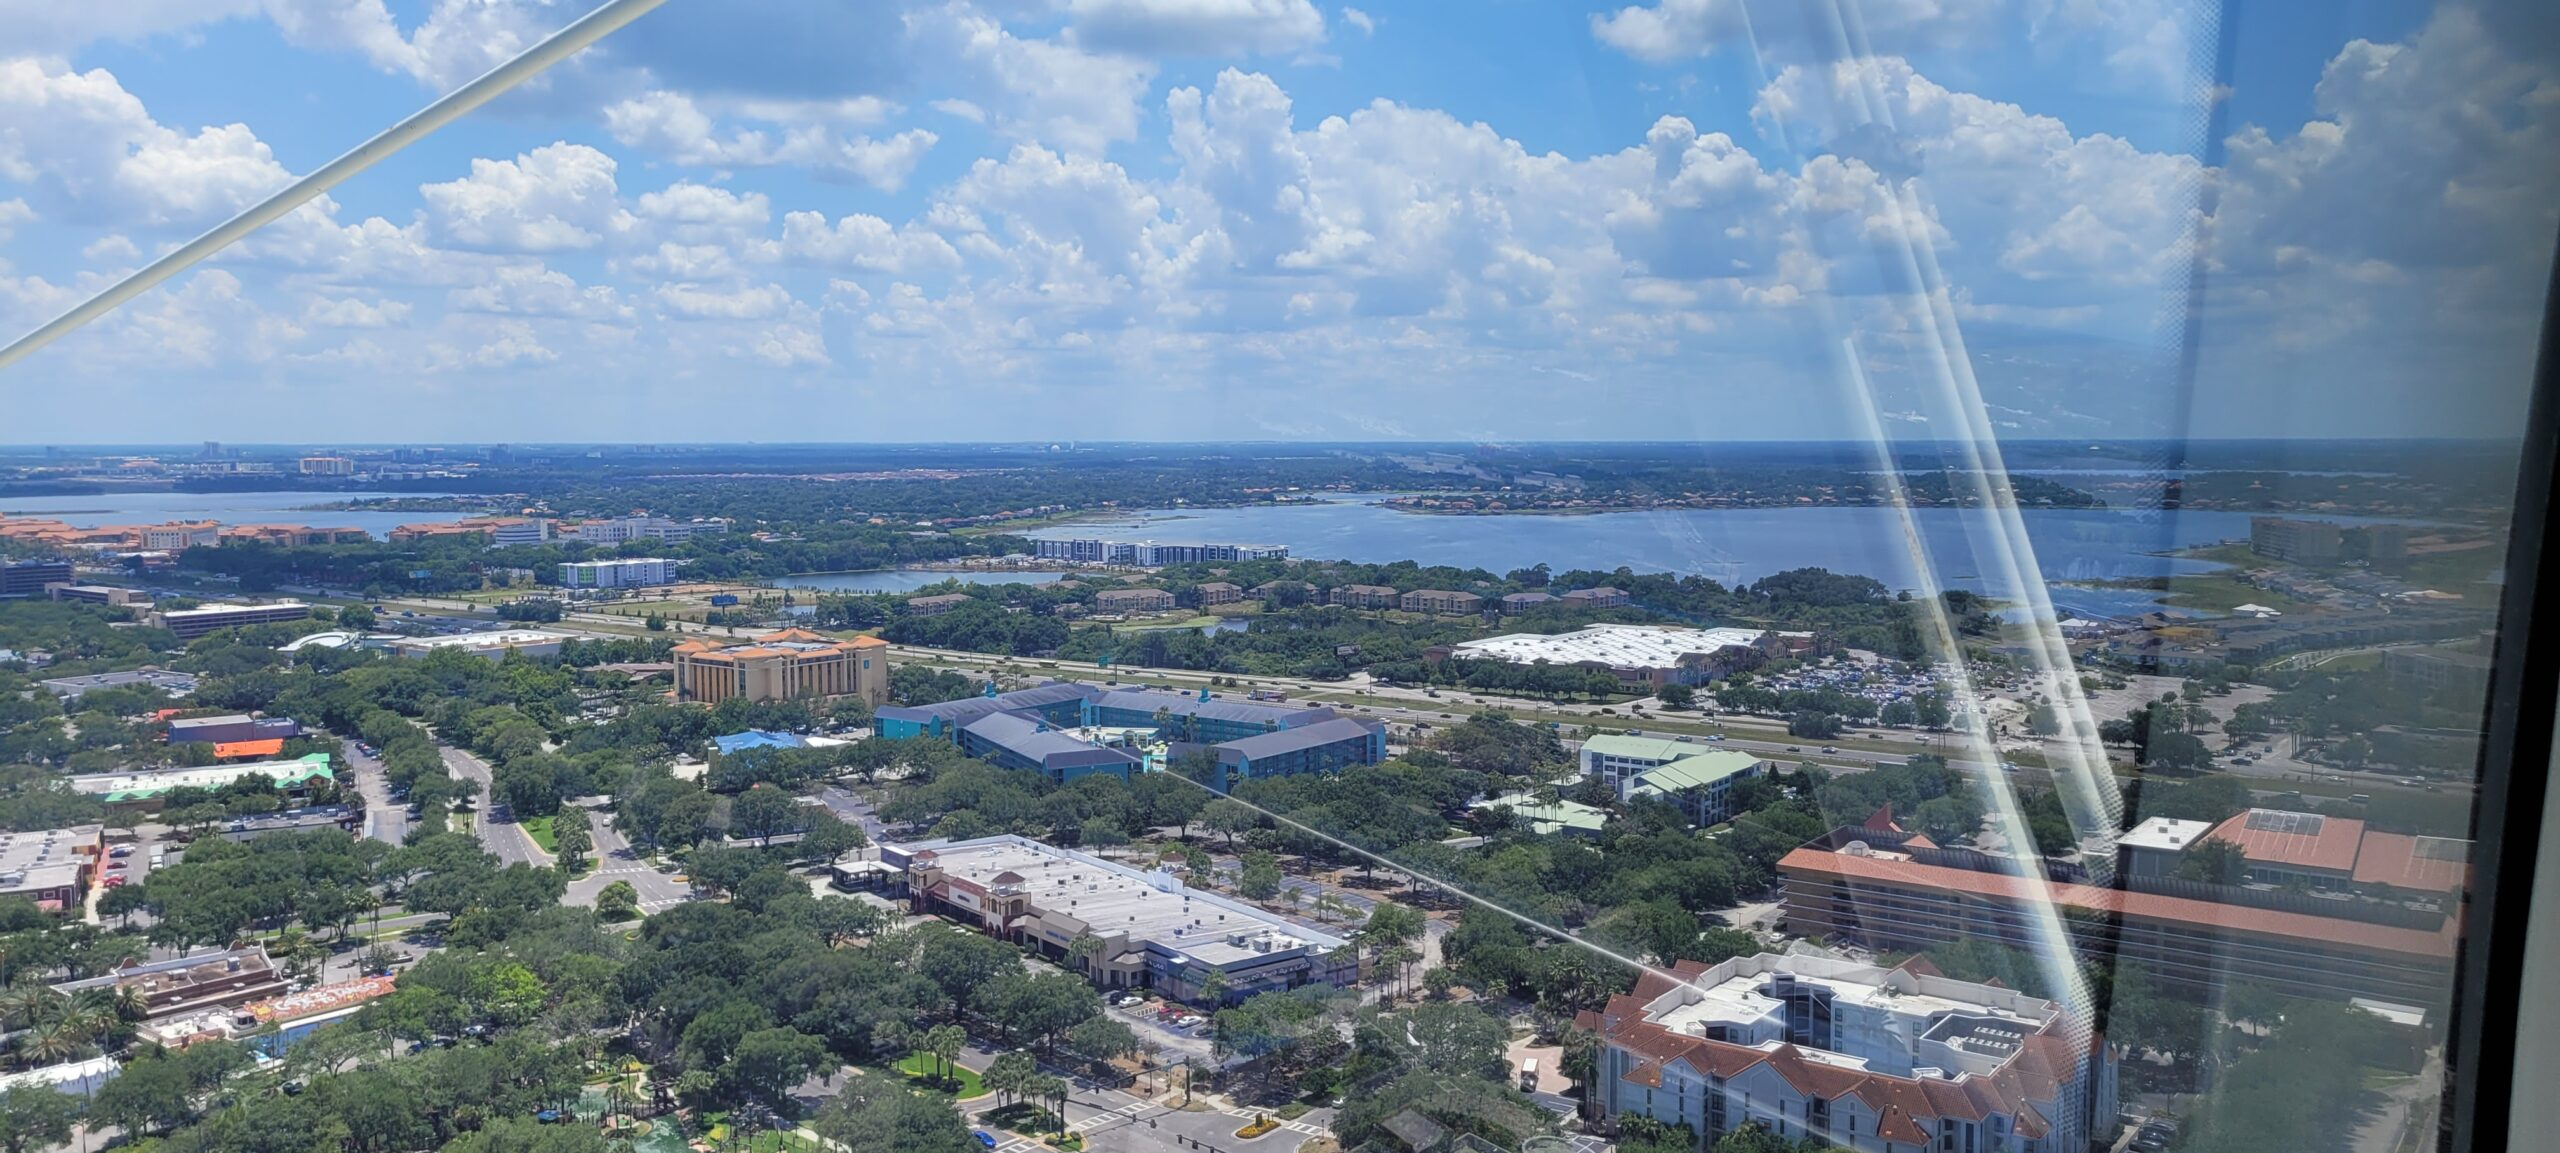 Have a family fun day at ICON Park in Orlando 28